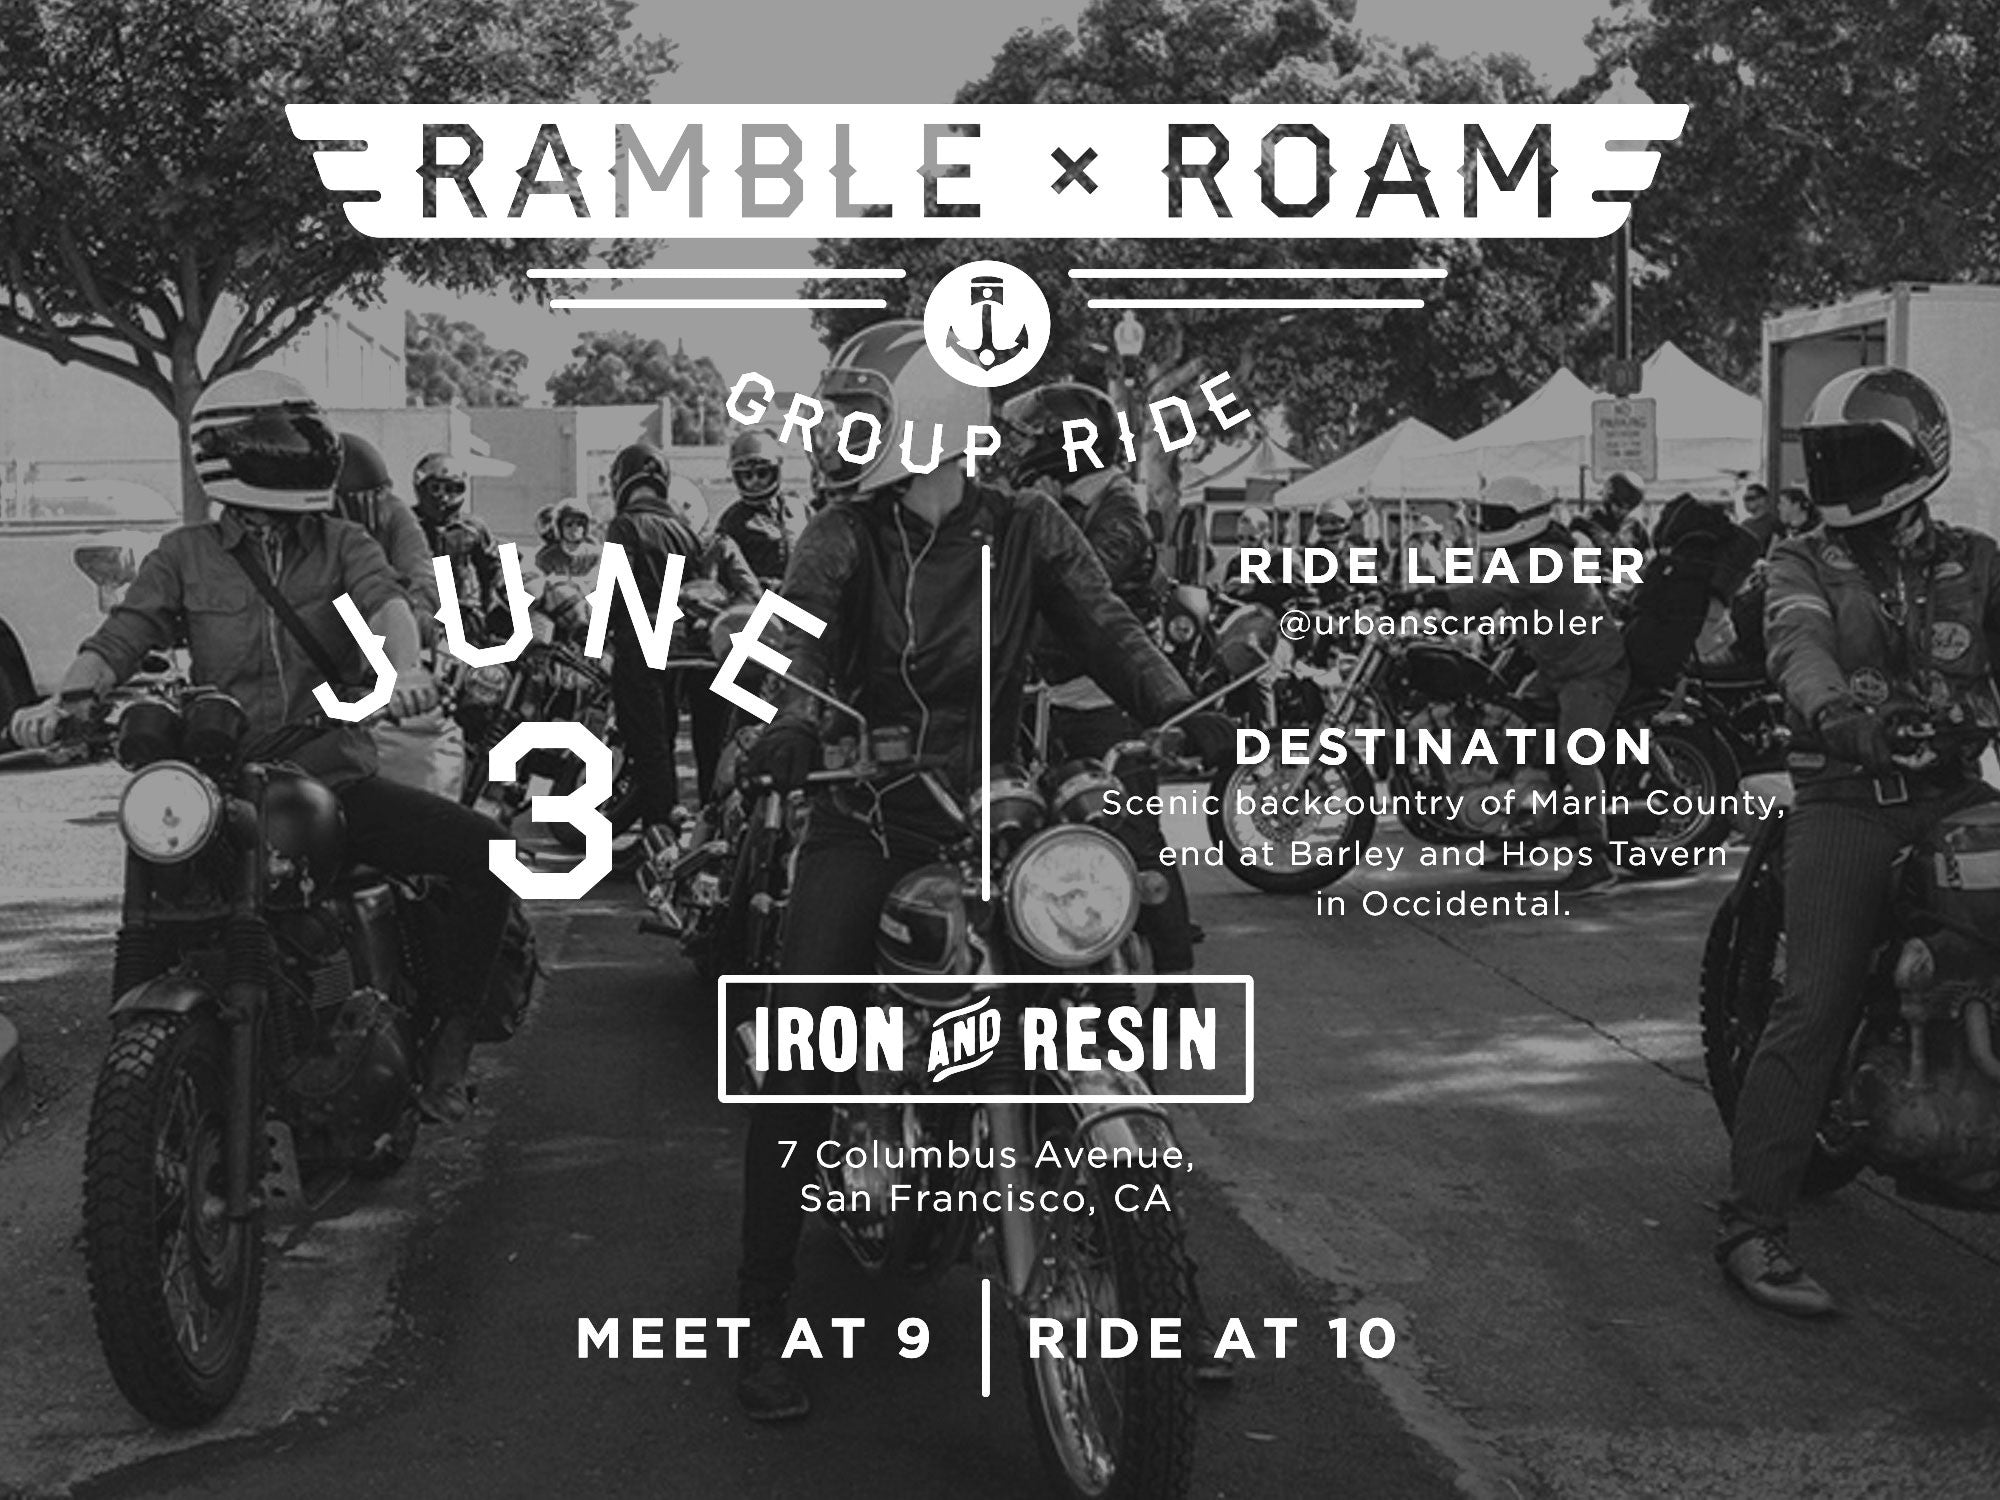 ramble x roam san francisco group ride motorcycle